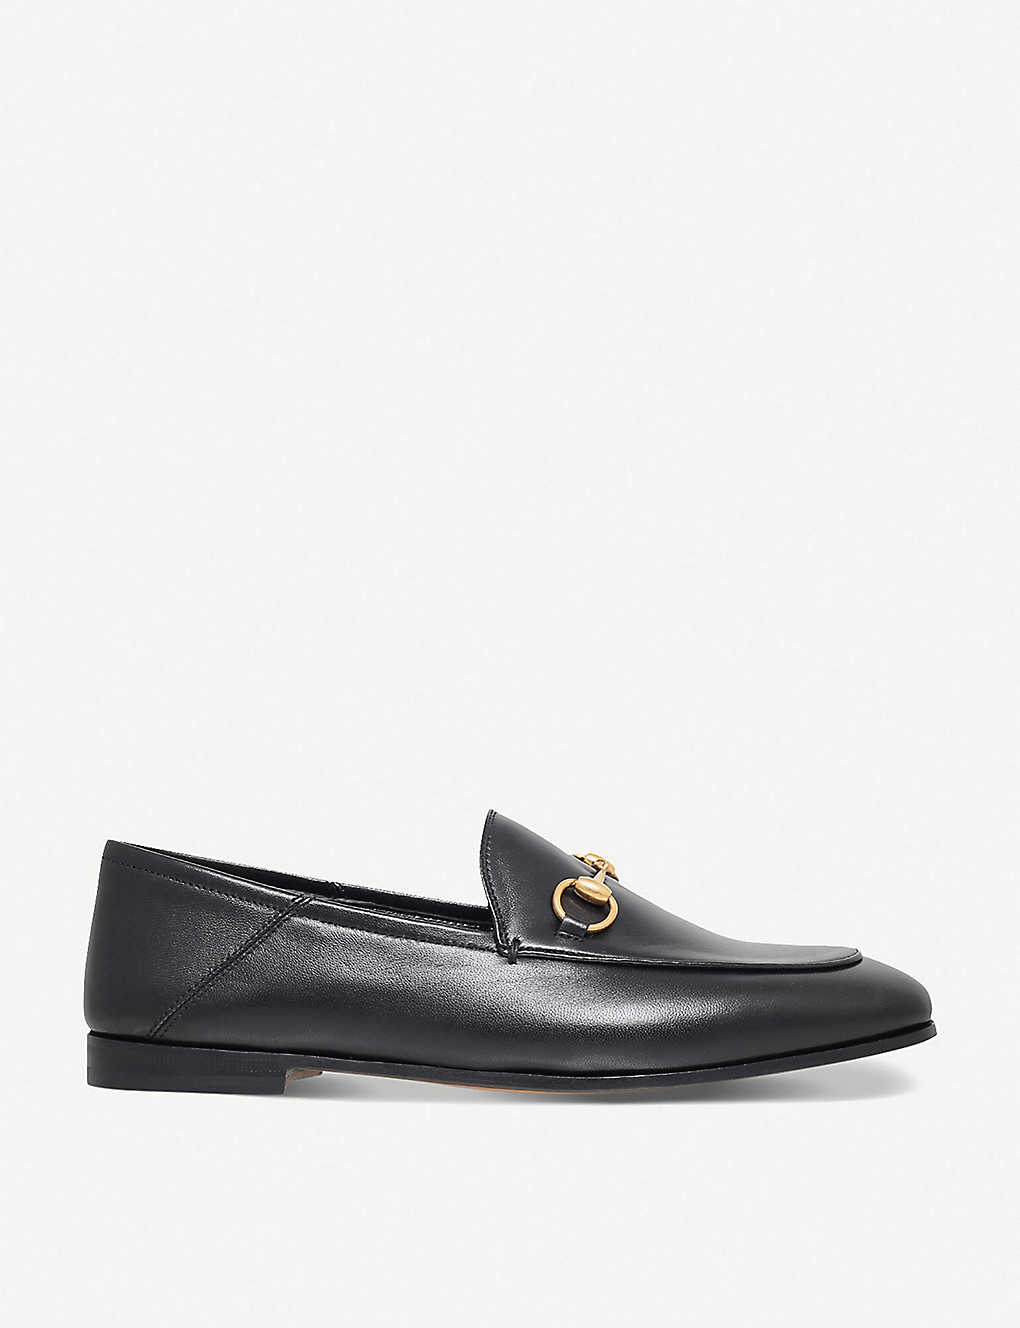 9beff3e6f GUCCI - Brixton collapsible leather loafers | Selfridges.com